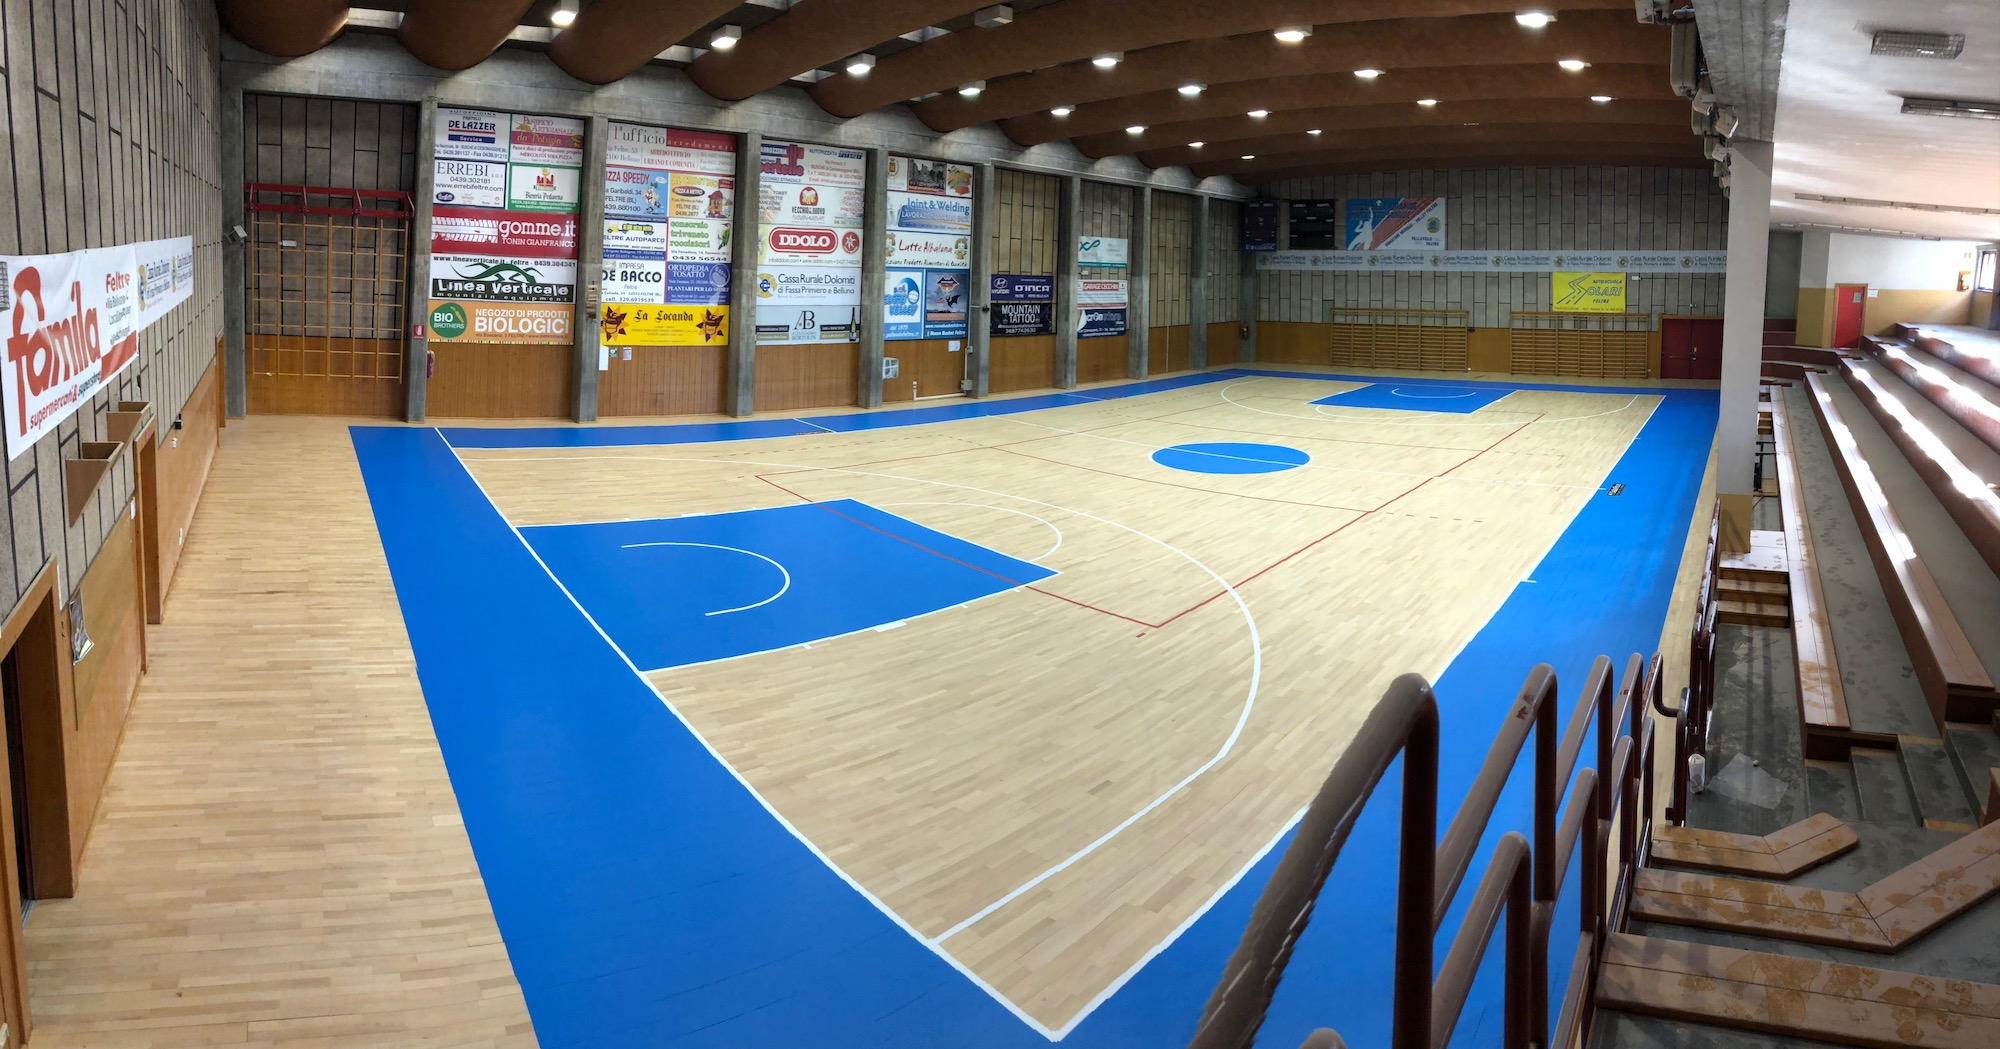 The flooring restored with the European standard